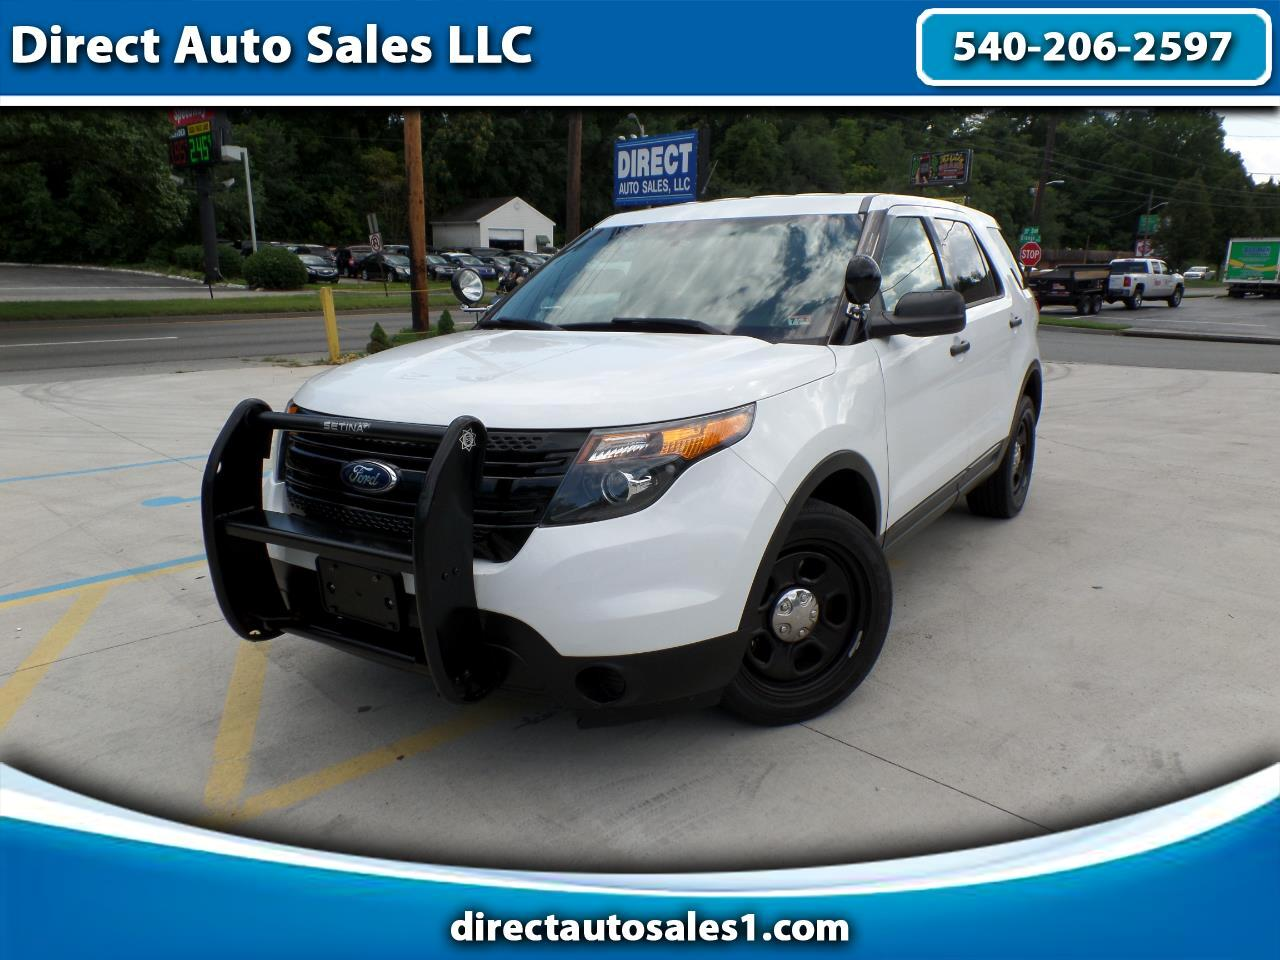 Ford Utility Police Interceptor AWD 4dr 2015